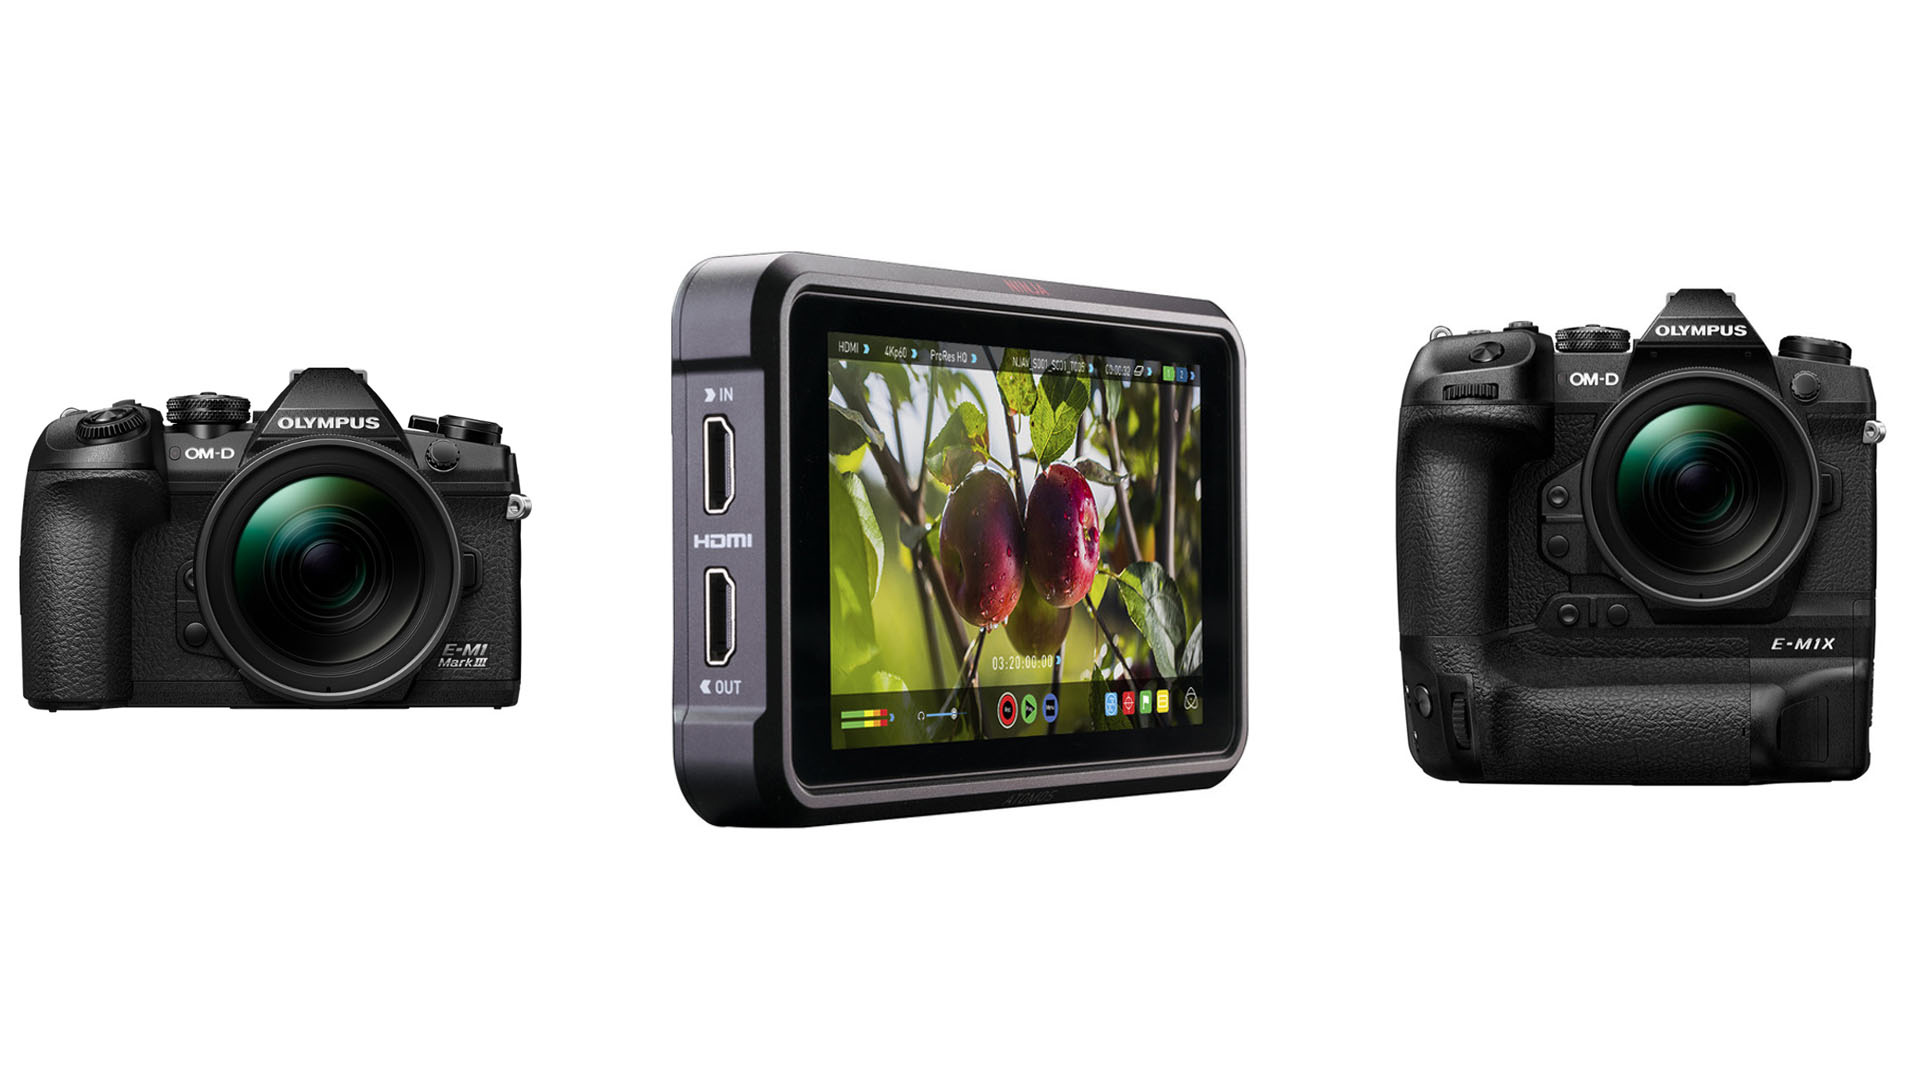 ProRes RAW output is now available on the Olympus OM-D cameras.